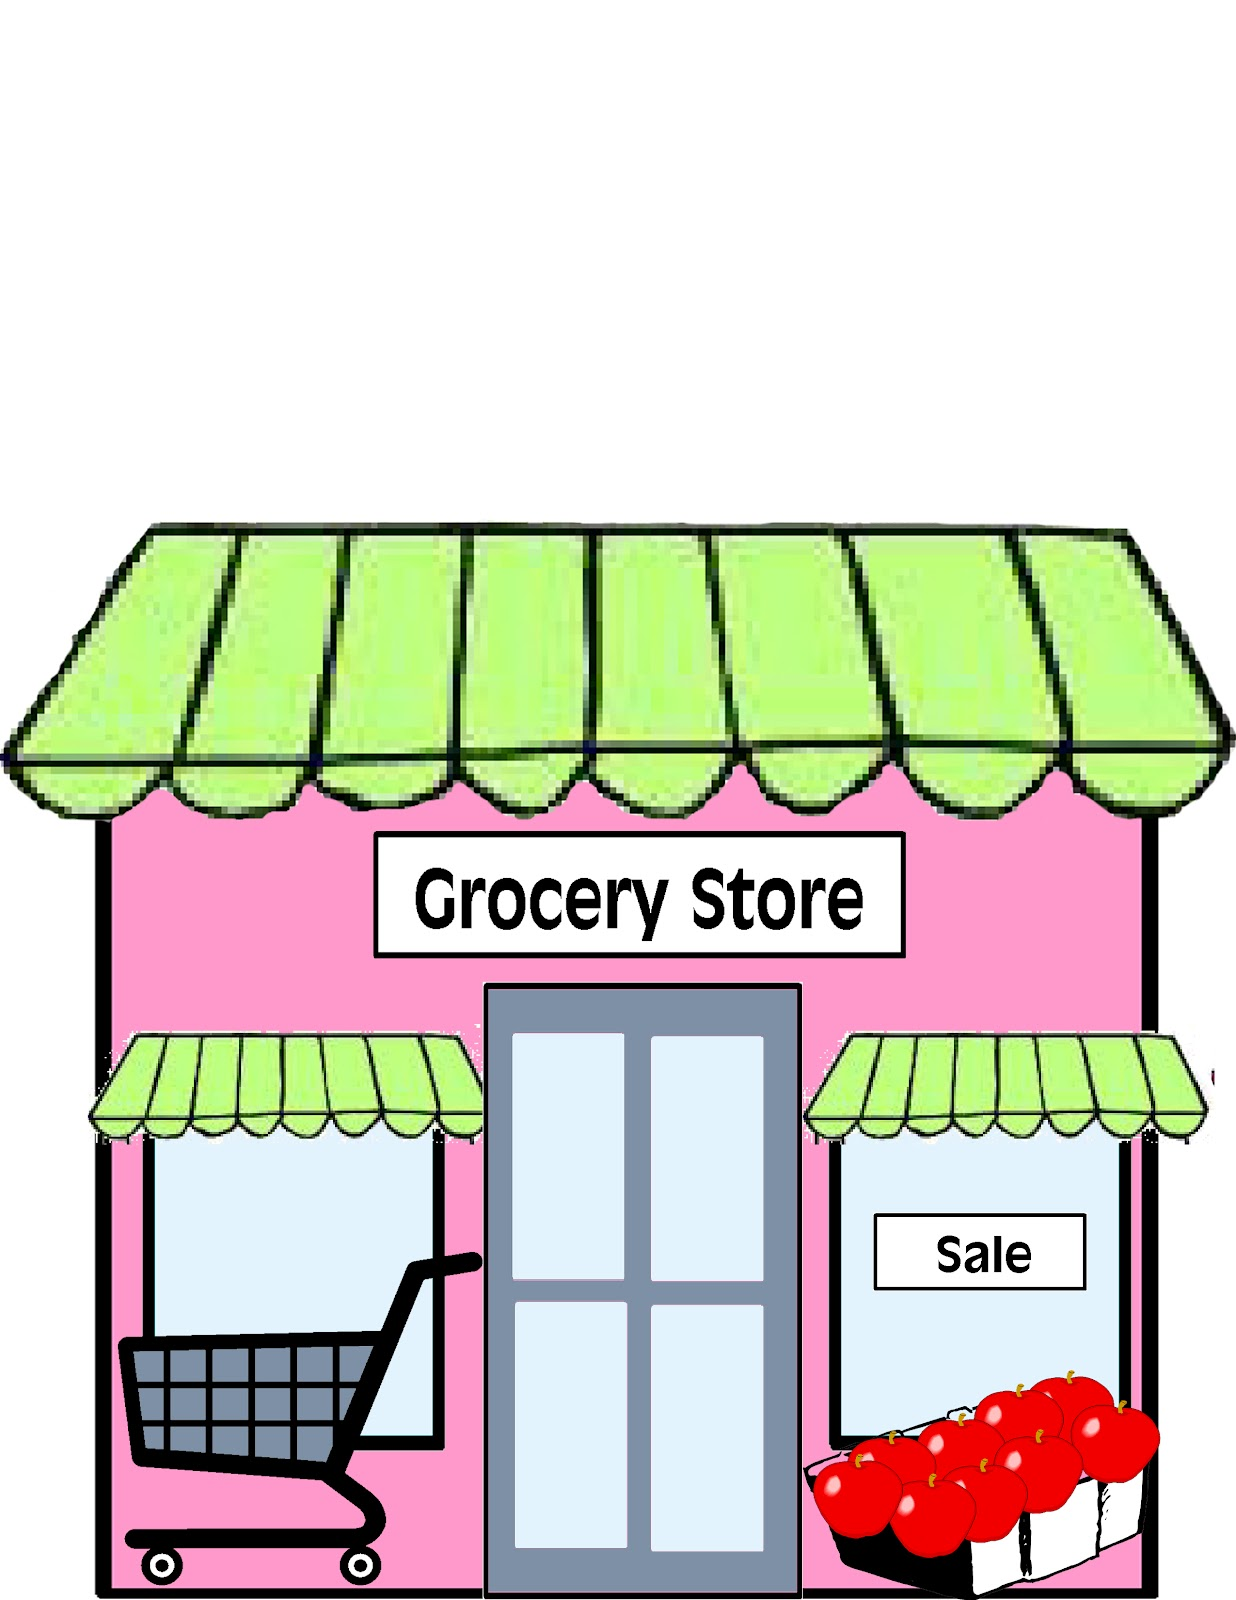 Grocery Store Building Cartoon